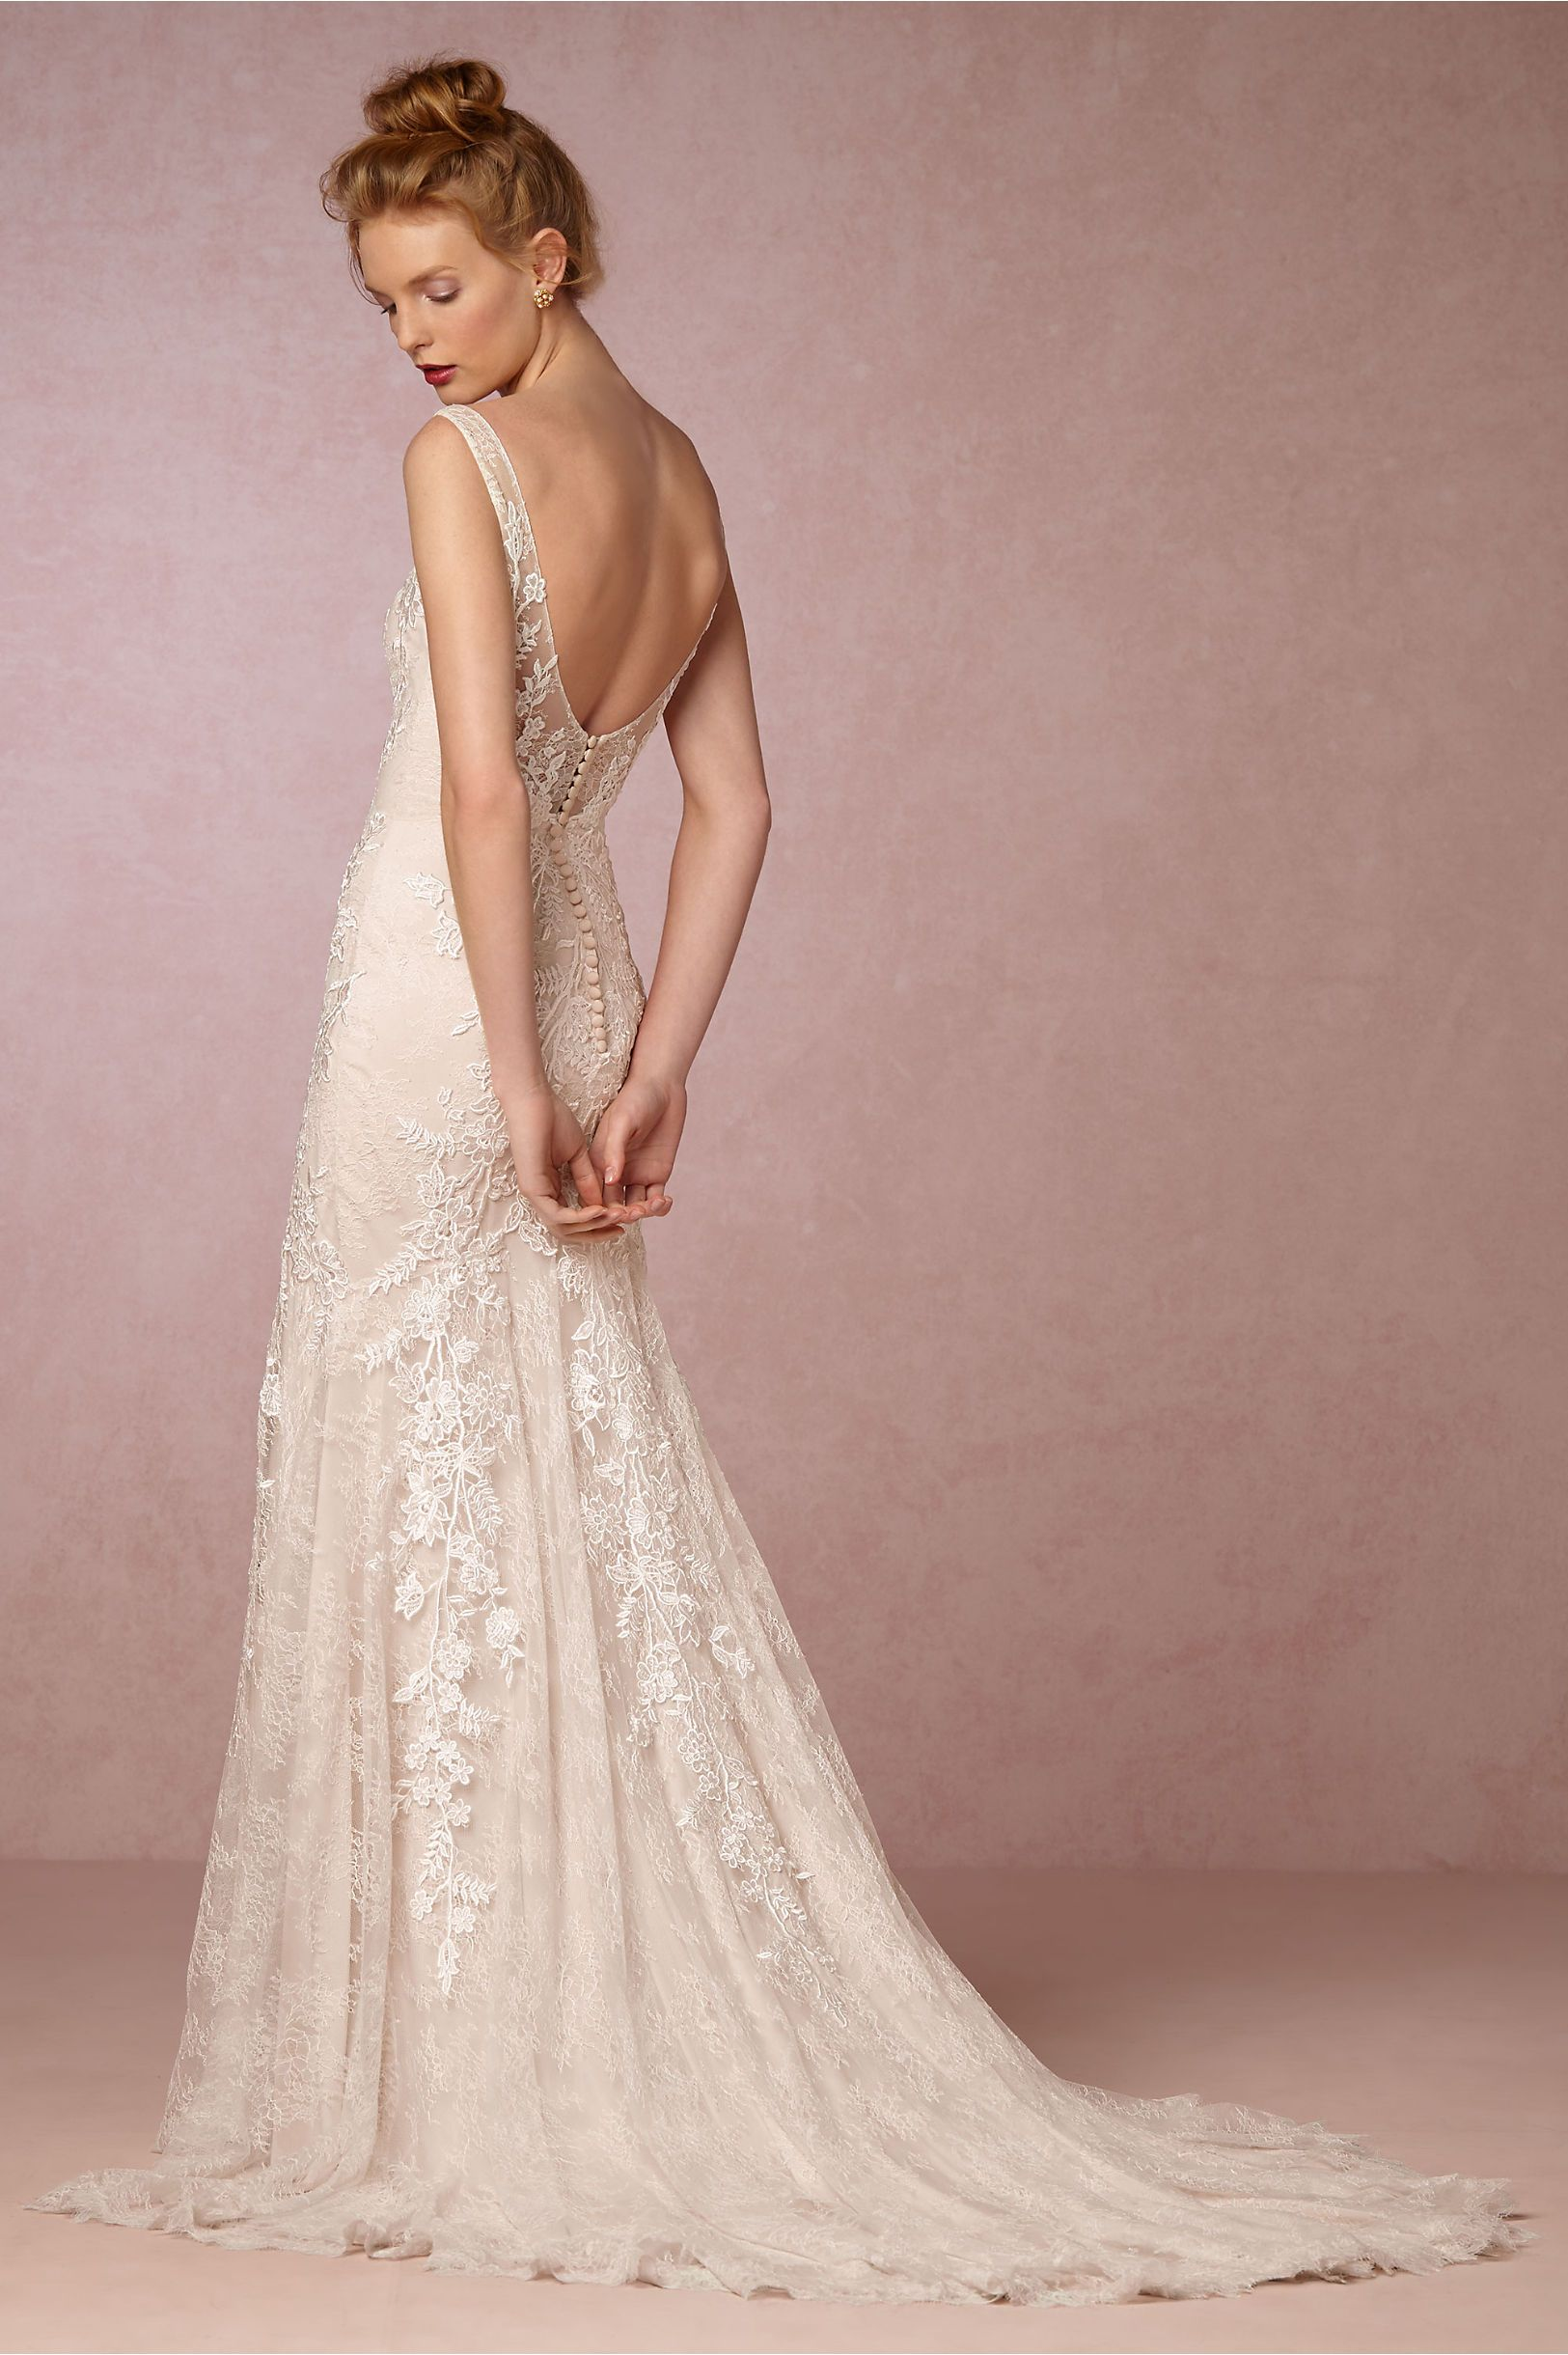 BHLDN Elisha Gown in Bride | BHLDN | R+M | Pinterest | Gowns ...